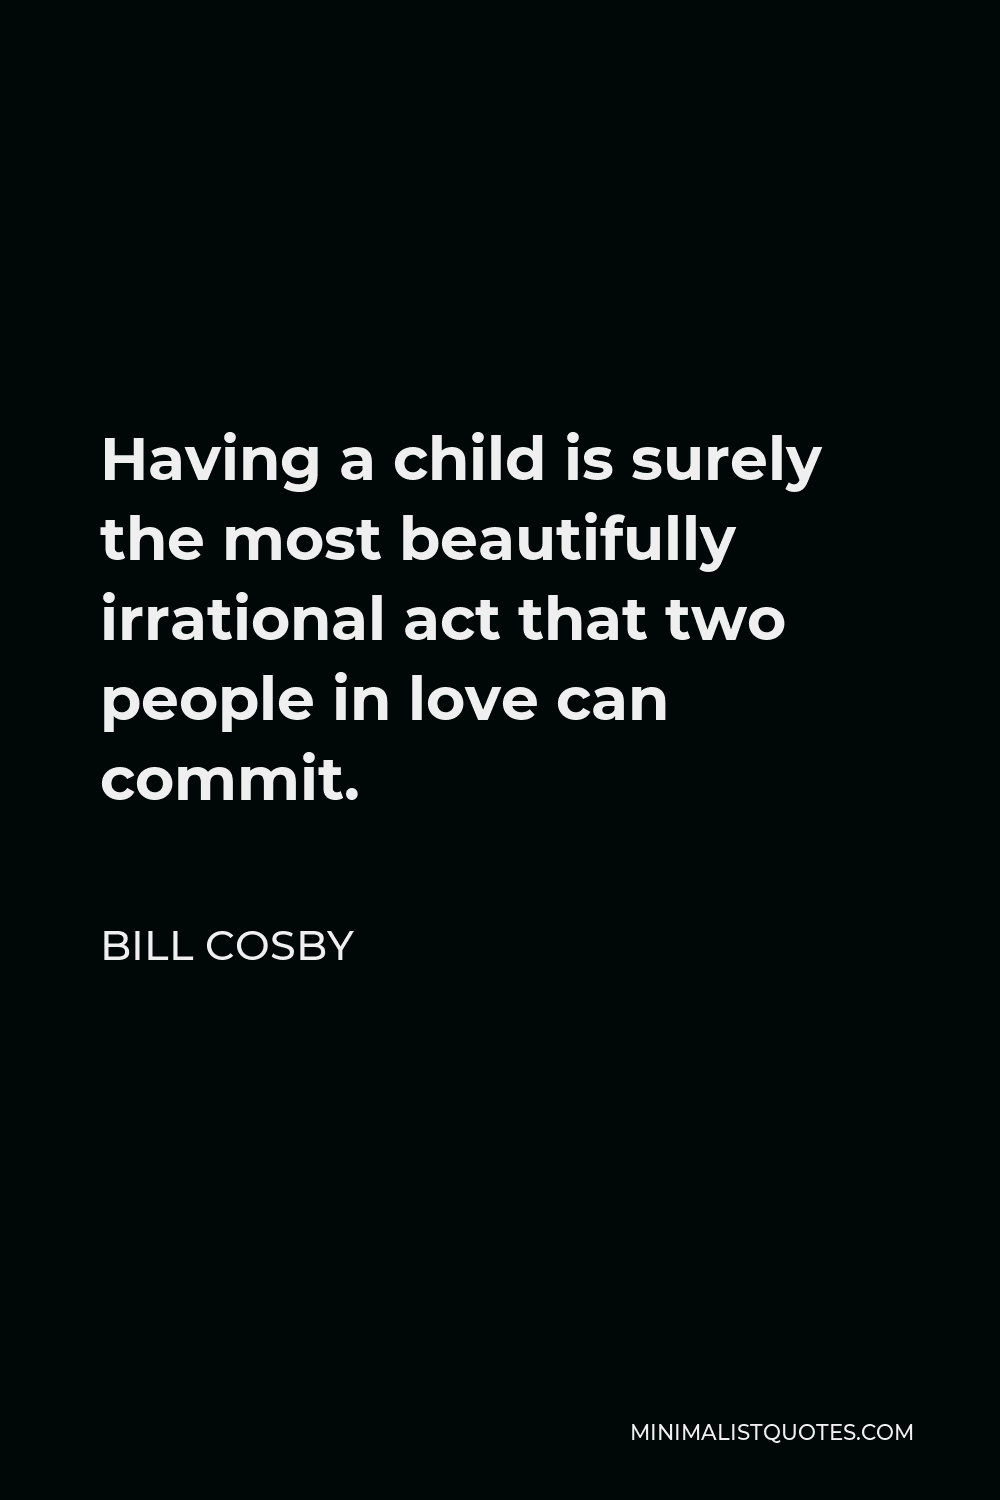 Bill Cosby Quote - Having a child is surely the most beautifully irrational act that two people in love can commit.